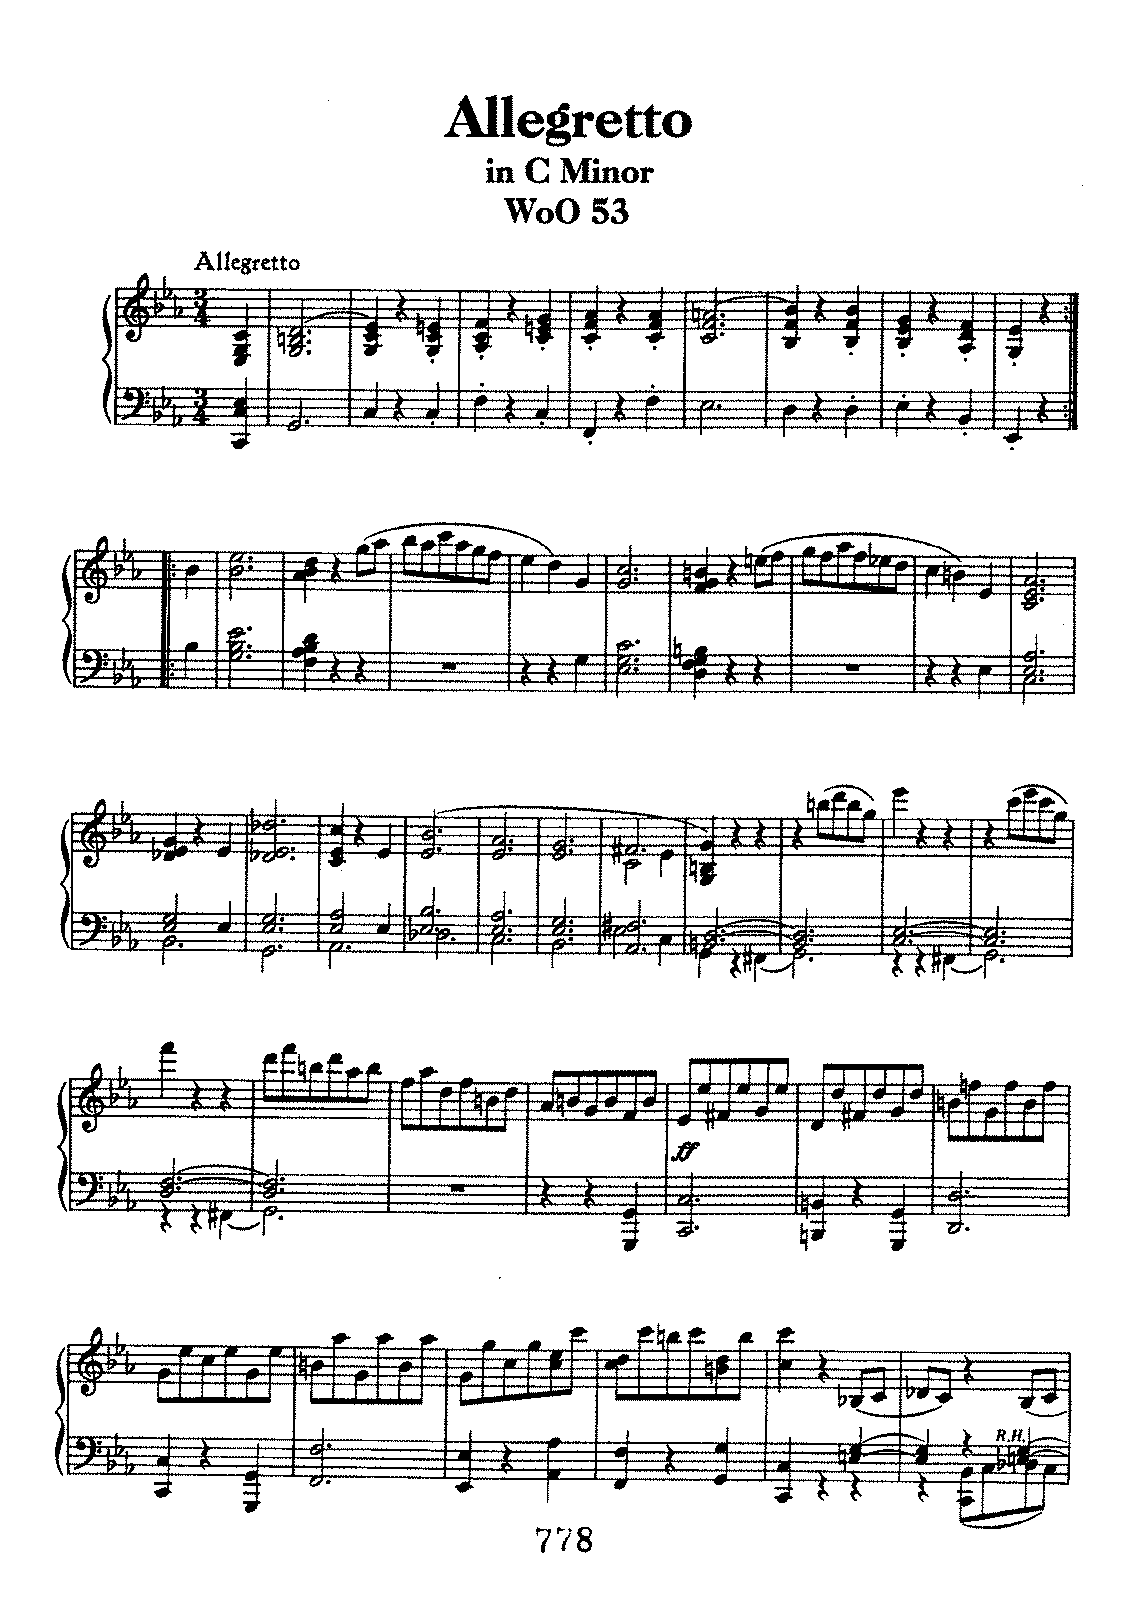 Beethoven woo53 Allegretto in c.pdf